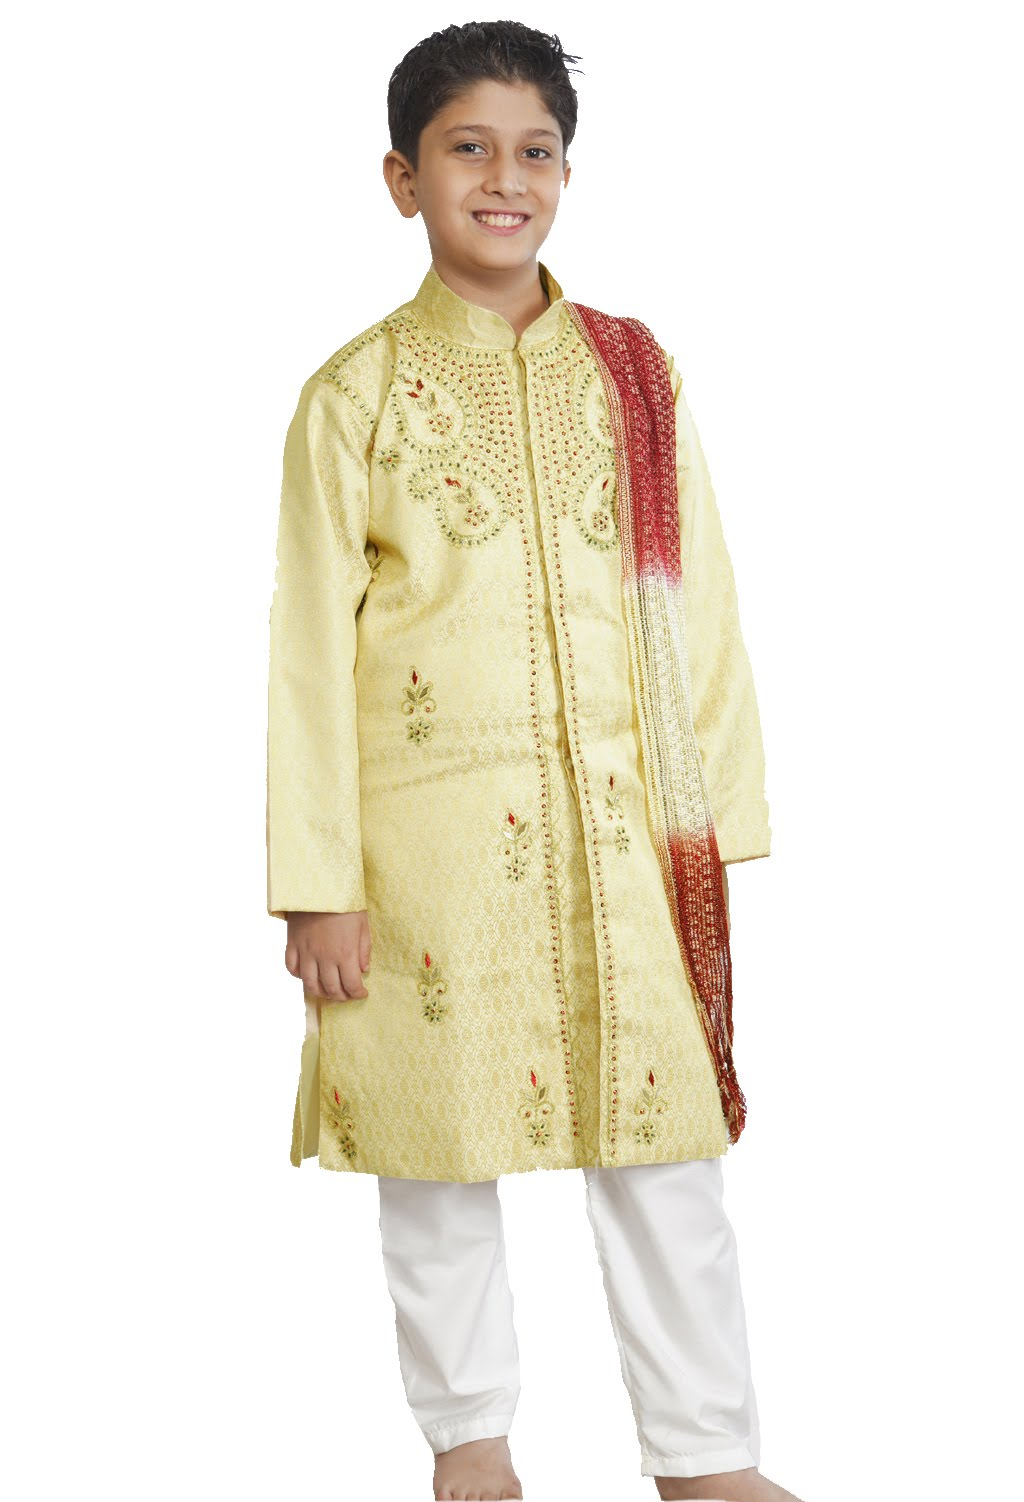 quality muslim & islamic clothing for women, men and kids